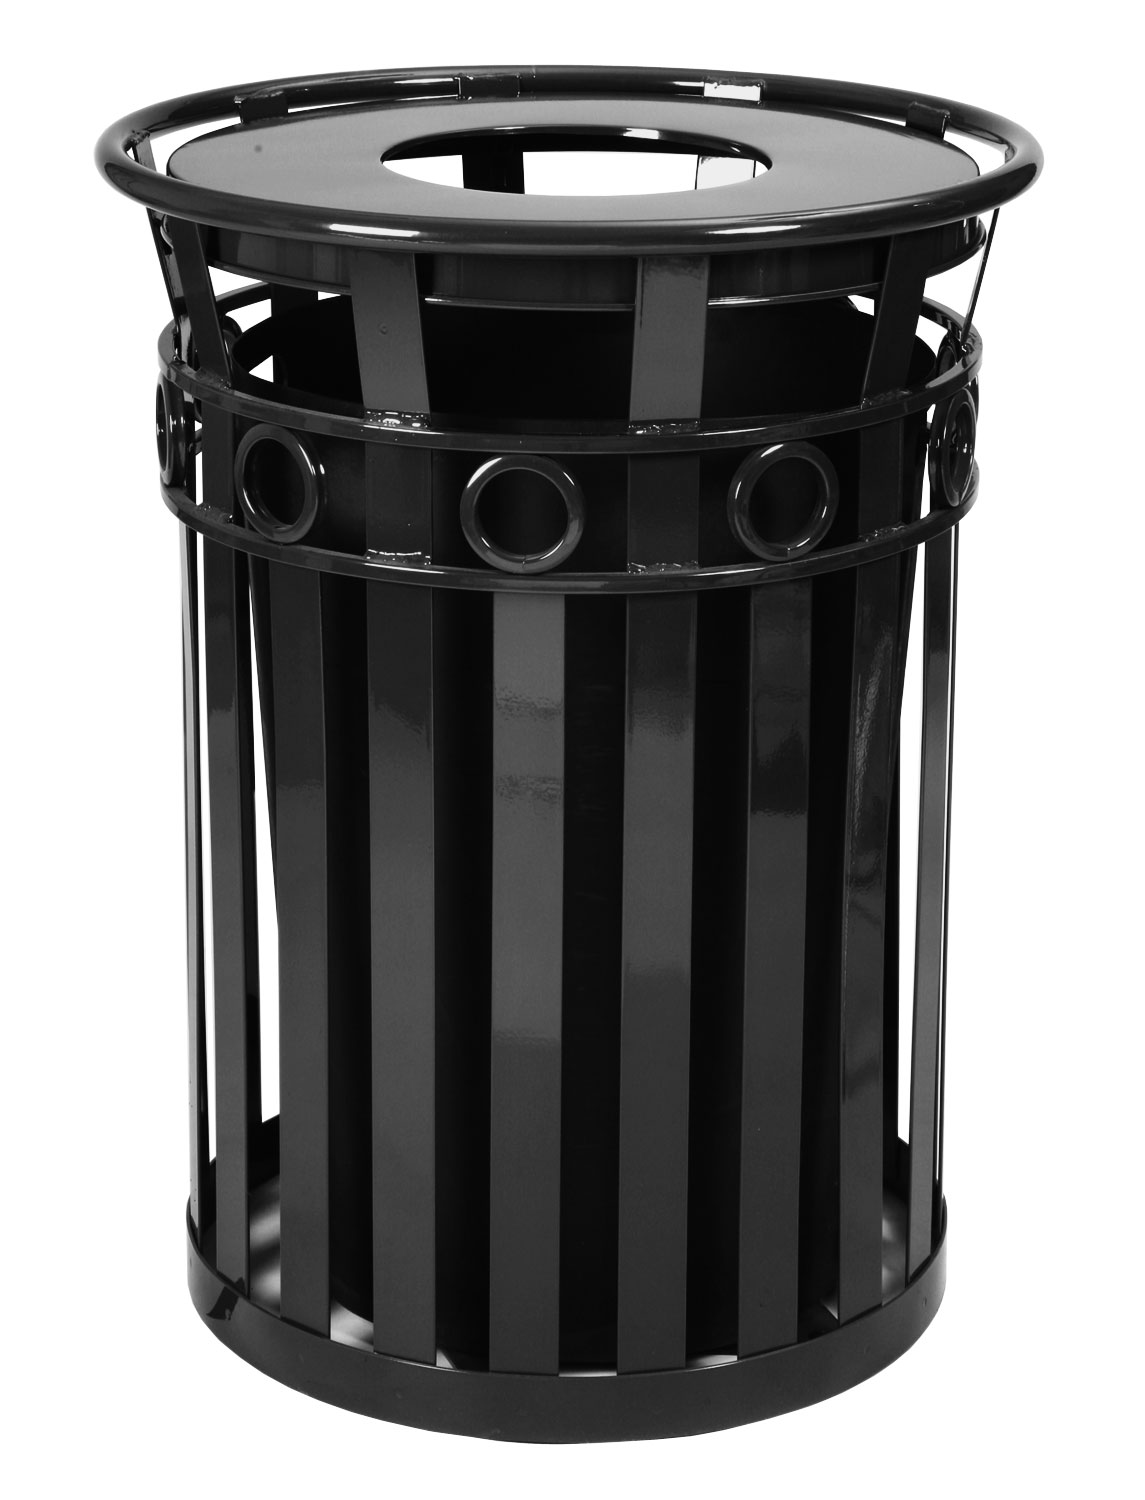 Trash receptacle and flat top lid, Outdoor